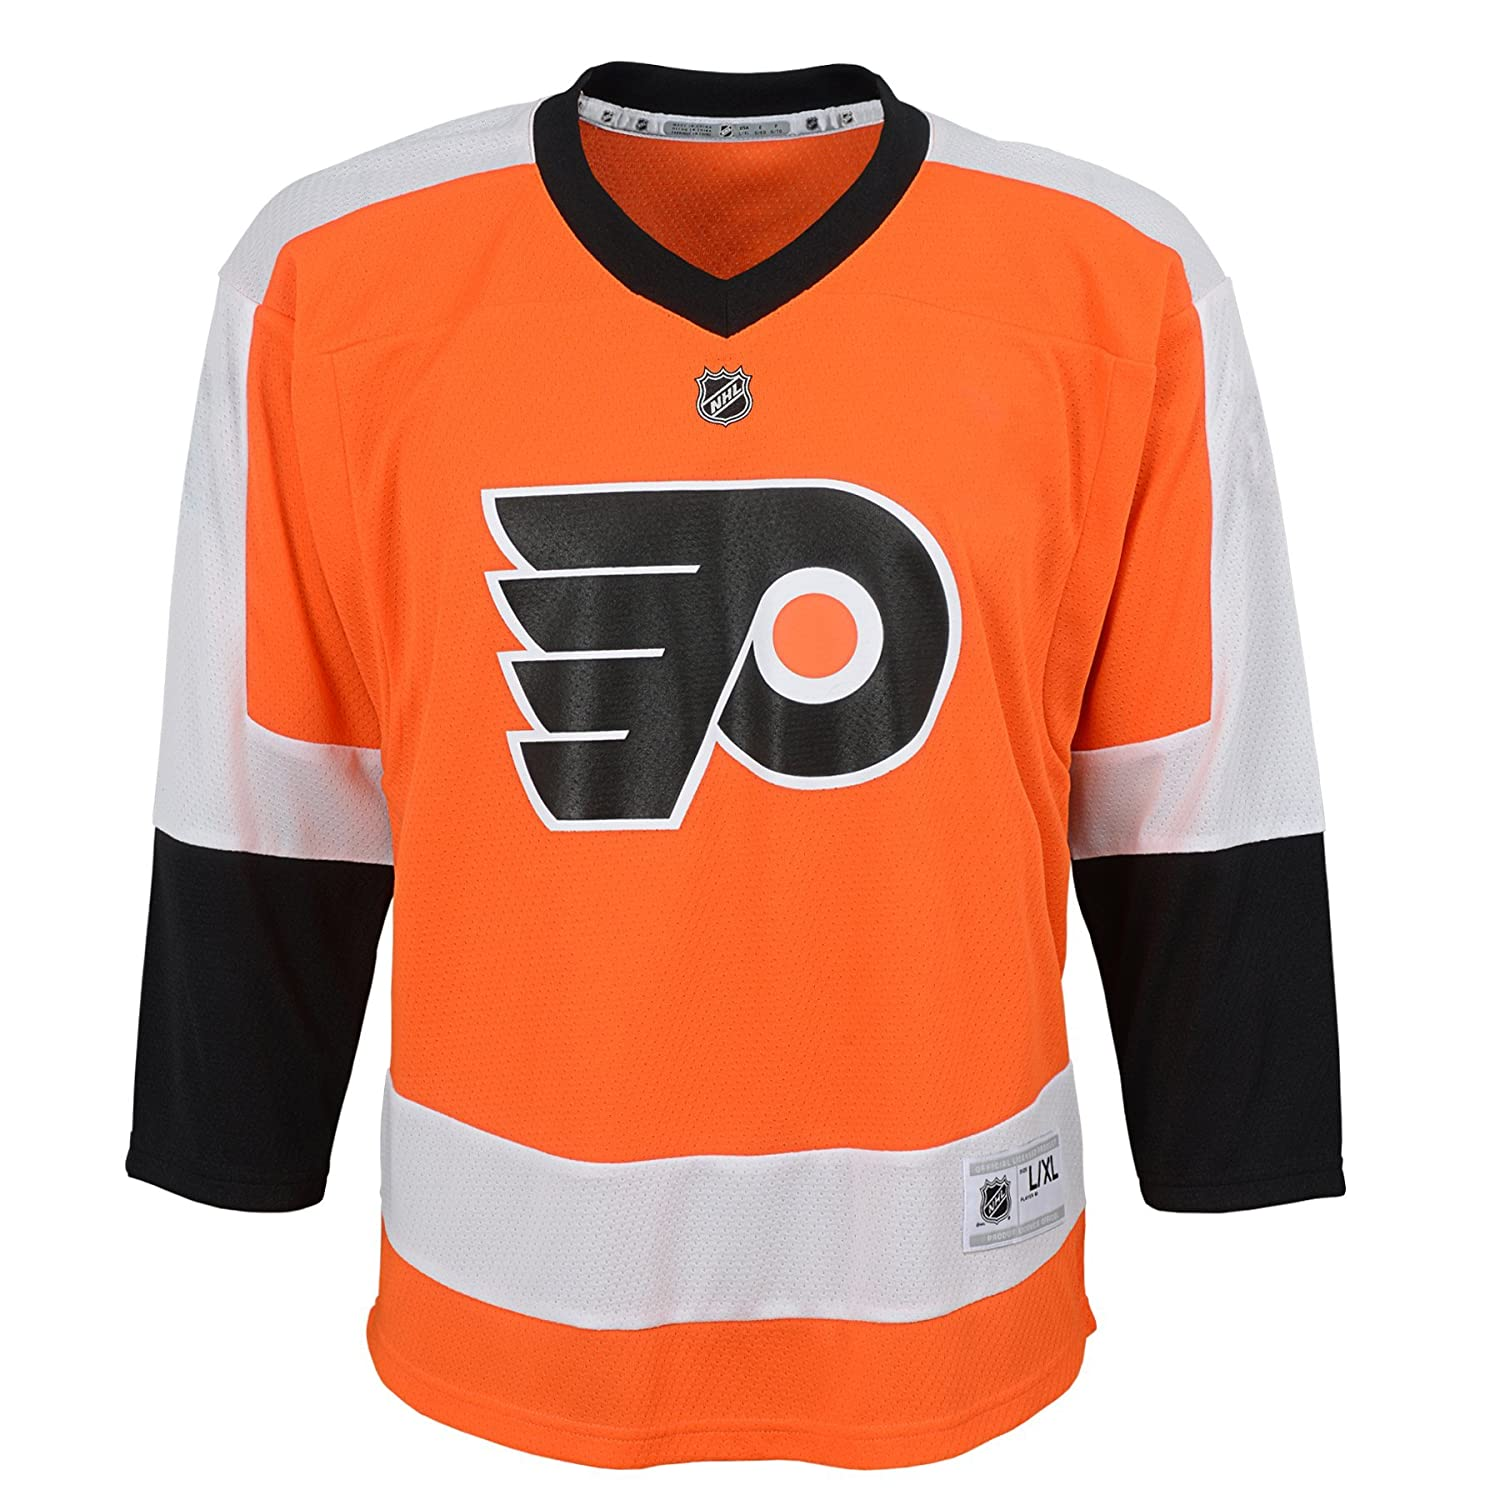 NHL by Outerstuff Toddler Replica Jersey-Home